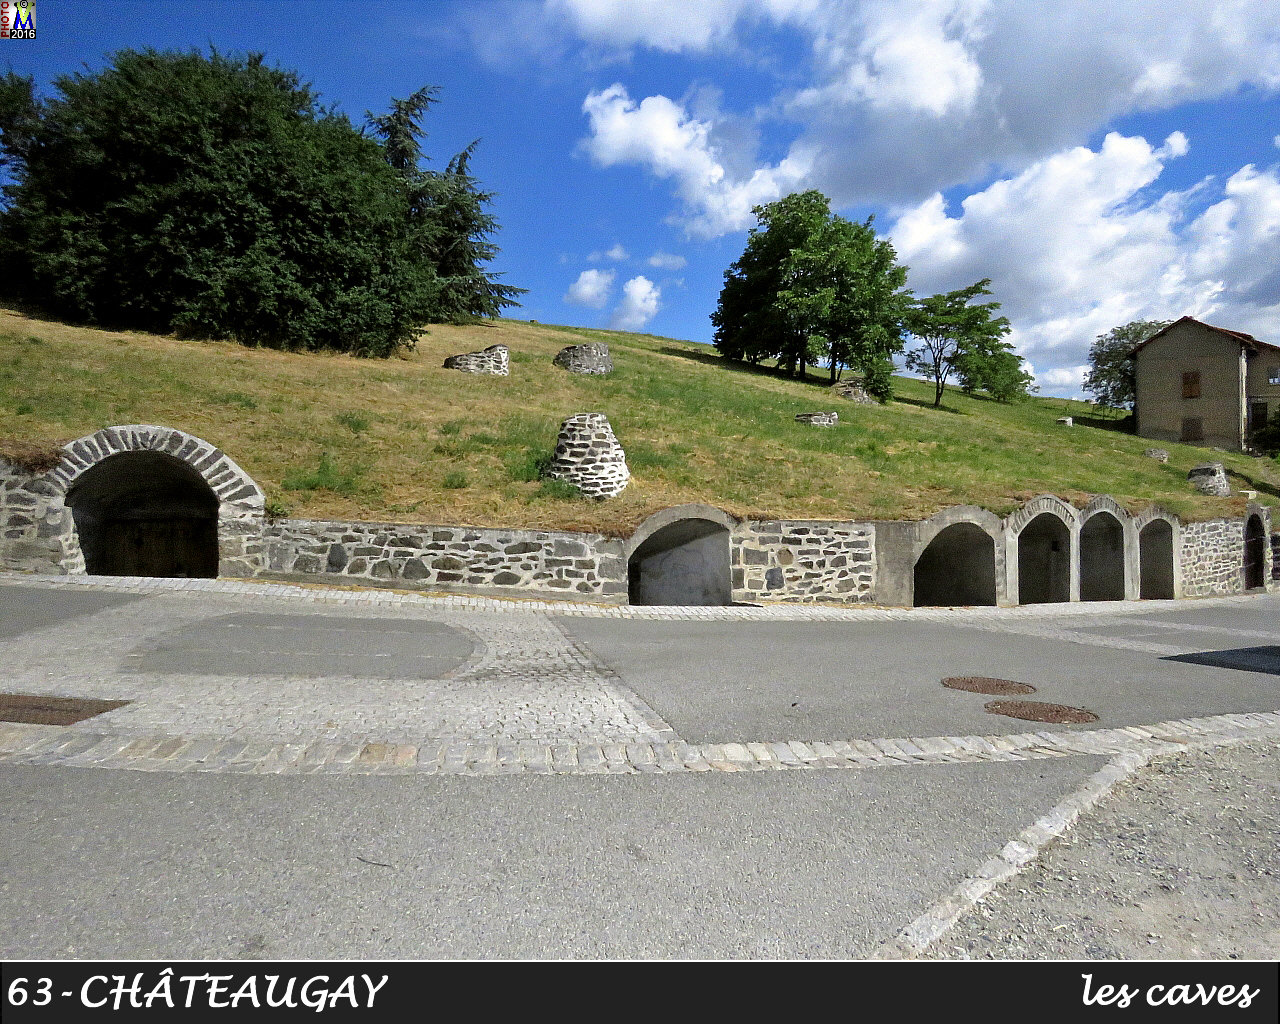 63CHATEAUGAY_caves_104.jpg